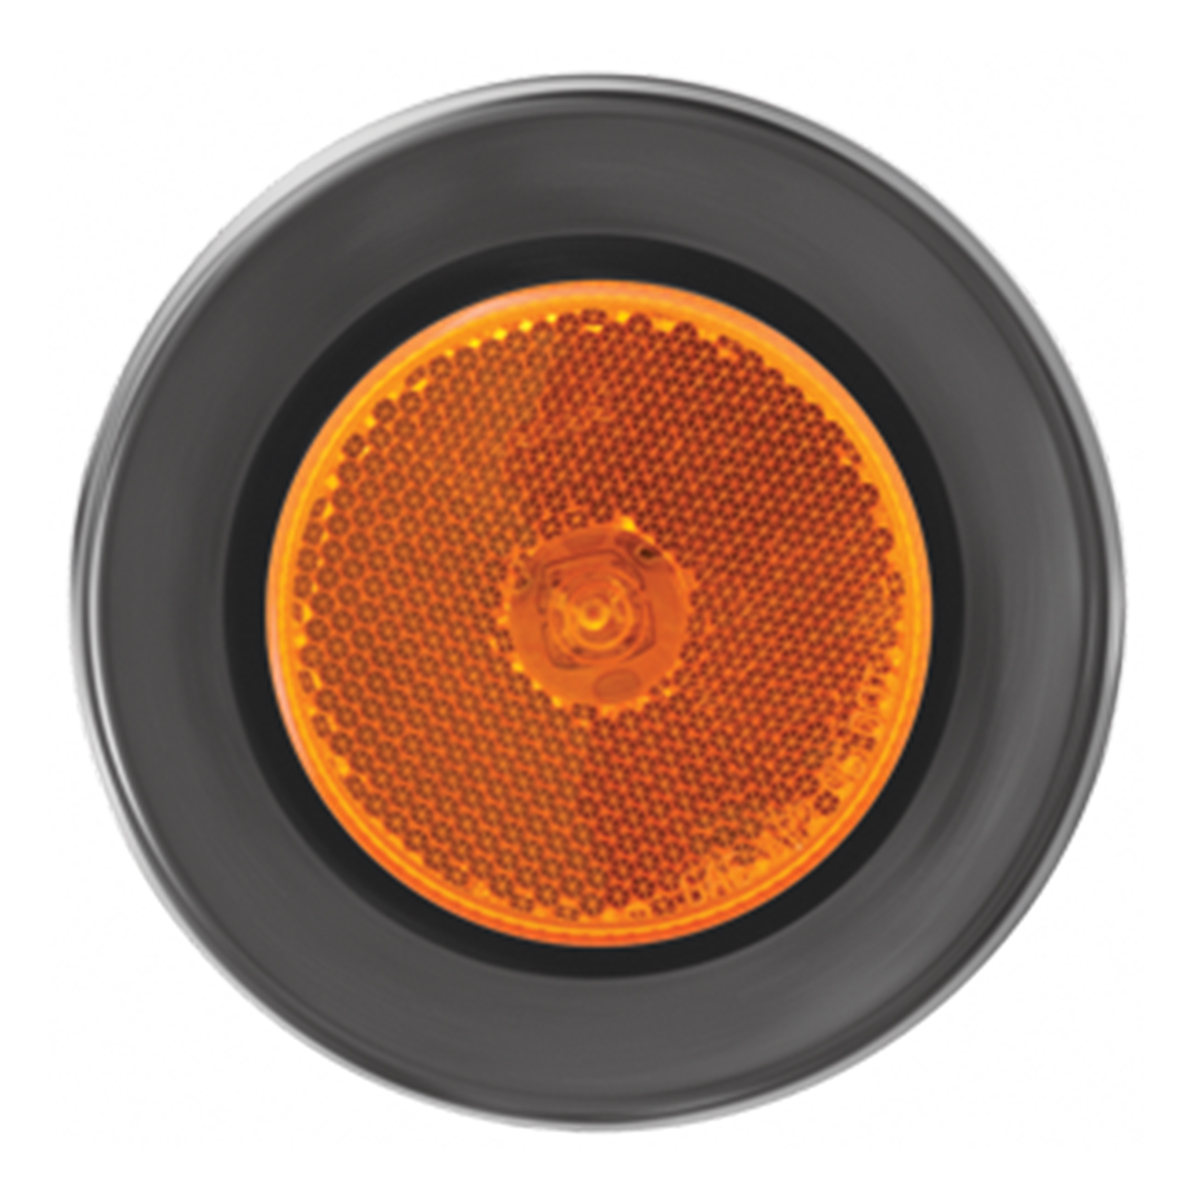 "76425 2.5"" Single LED Marker Light with Black Rubber Grommet"